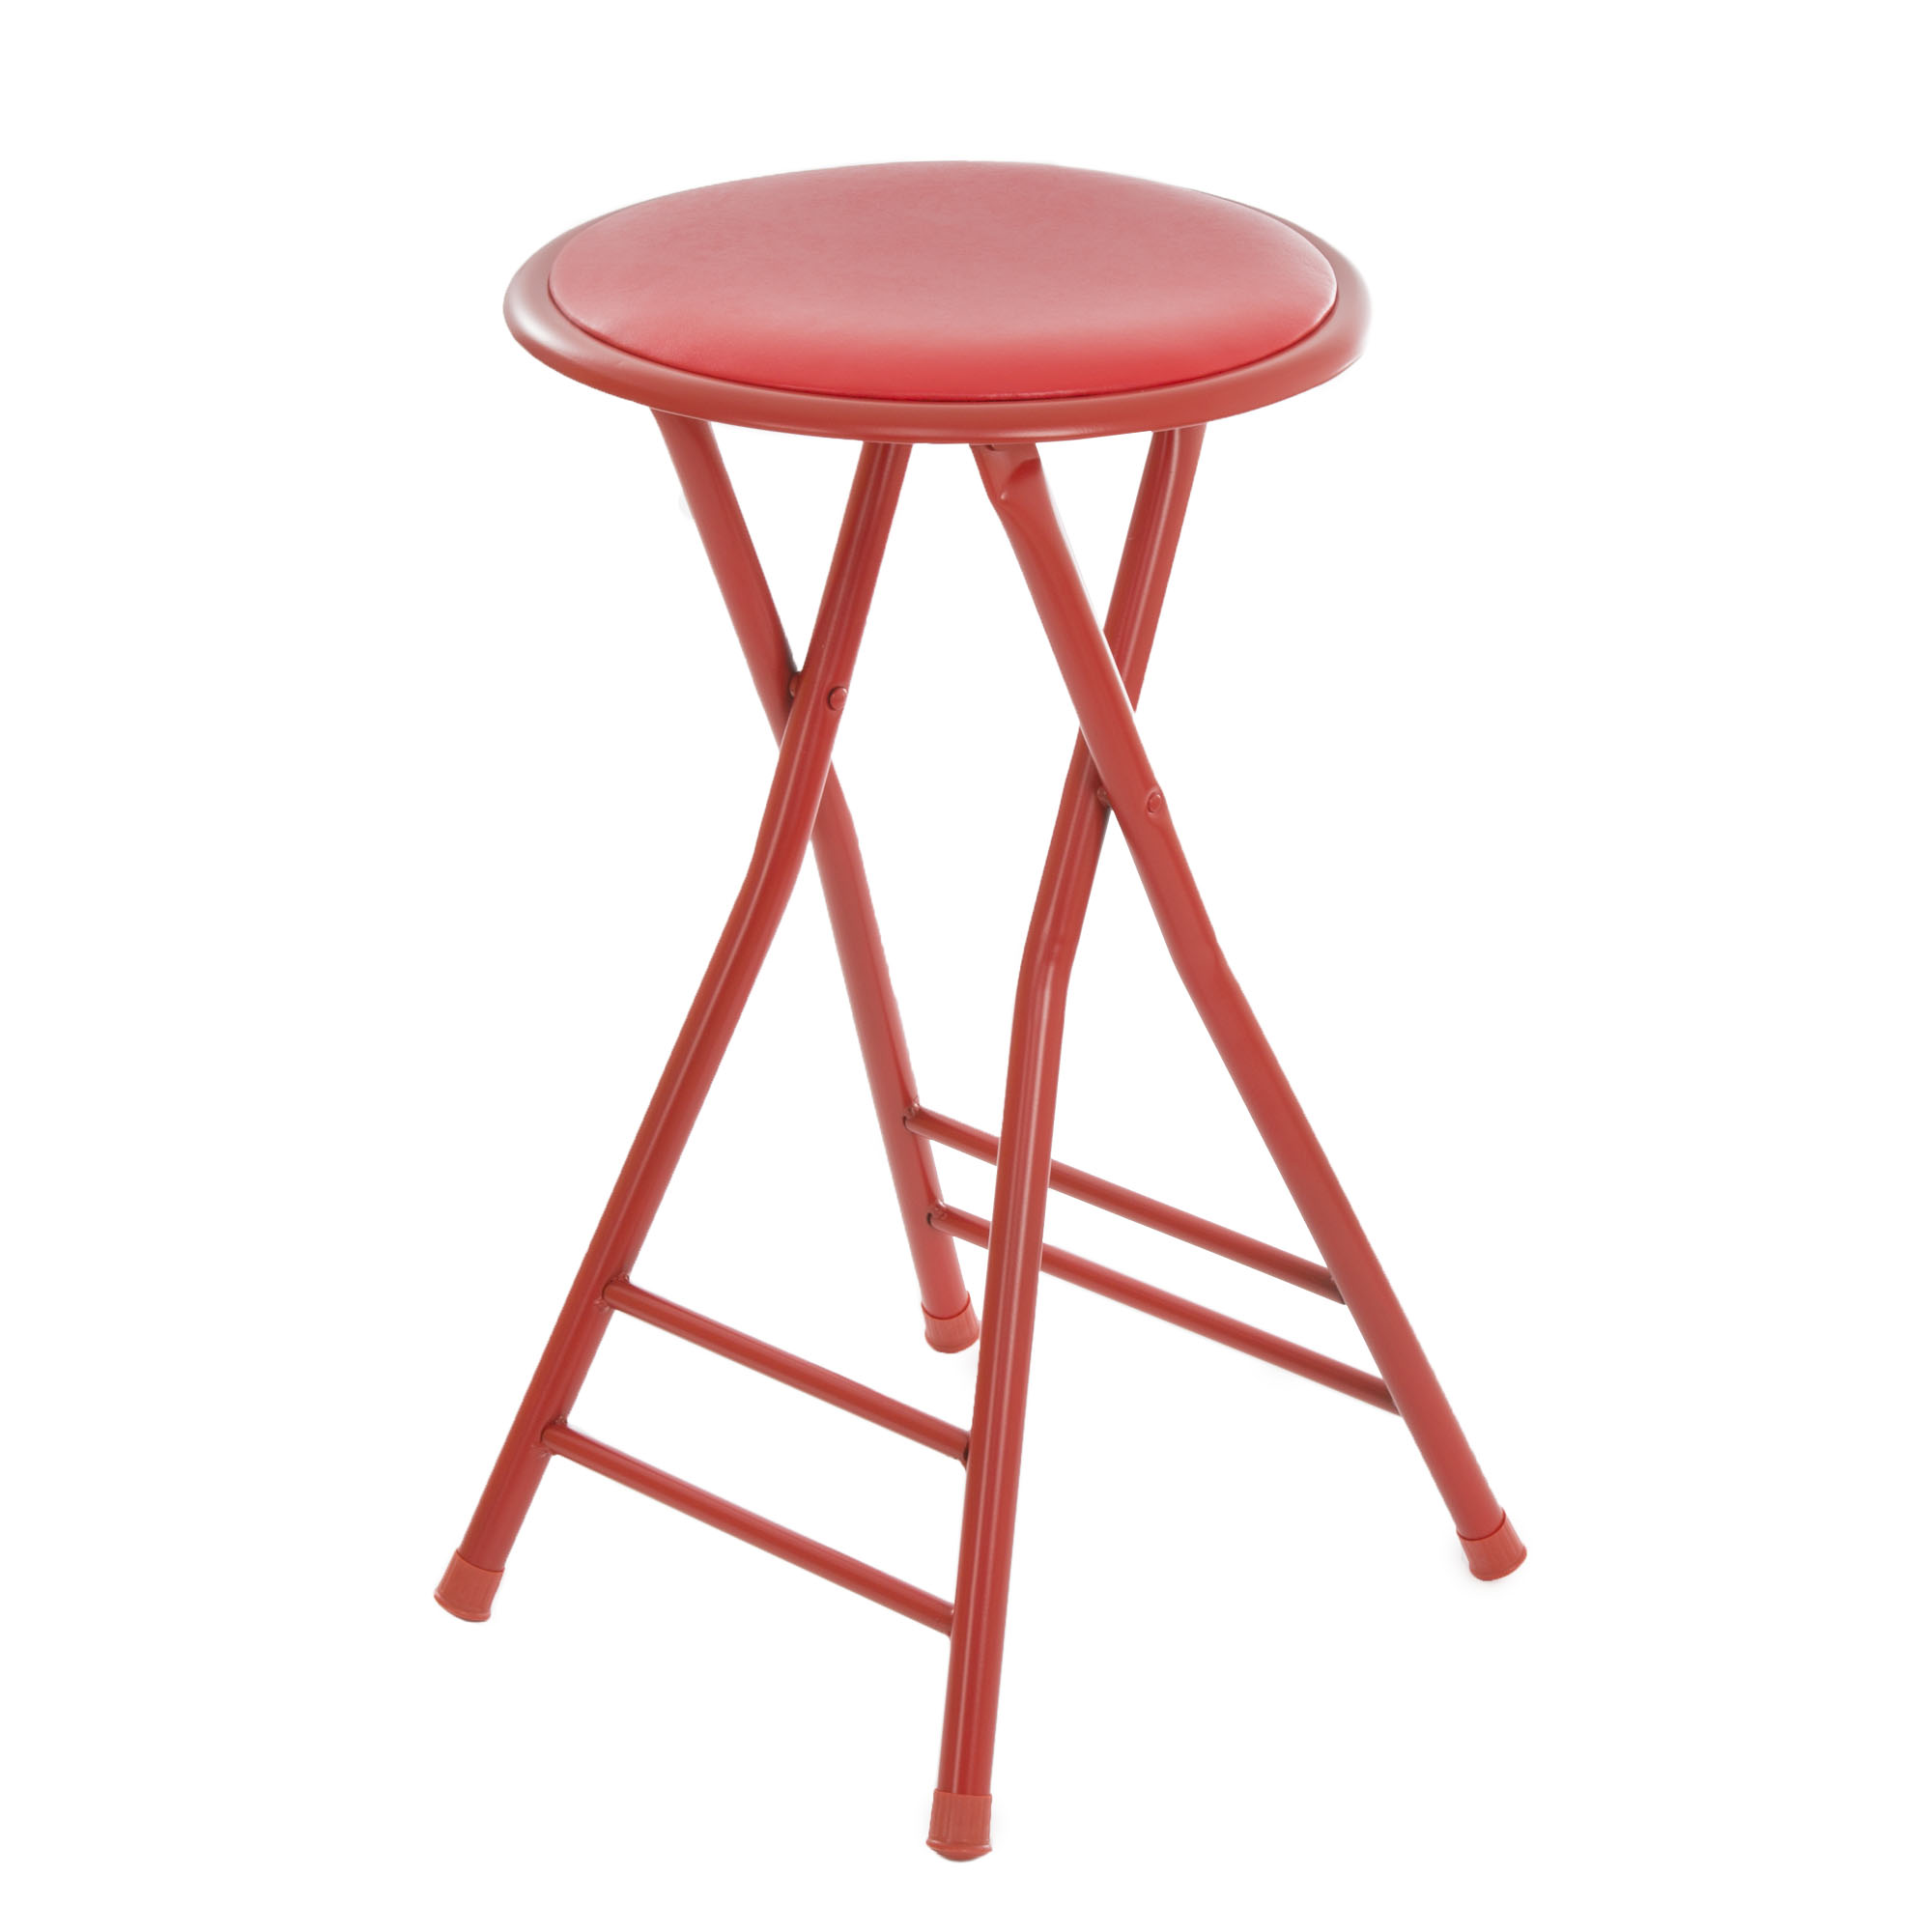 Trademark Home Collection 24 x 14 Cushioned Folding Stool - Red